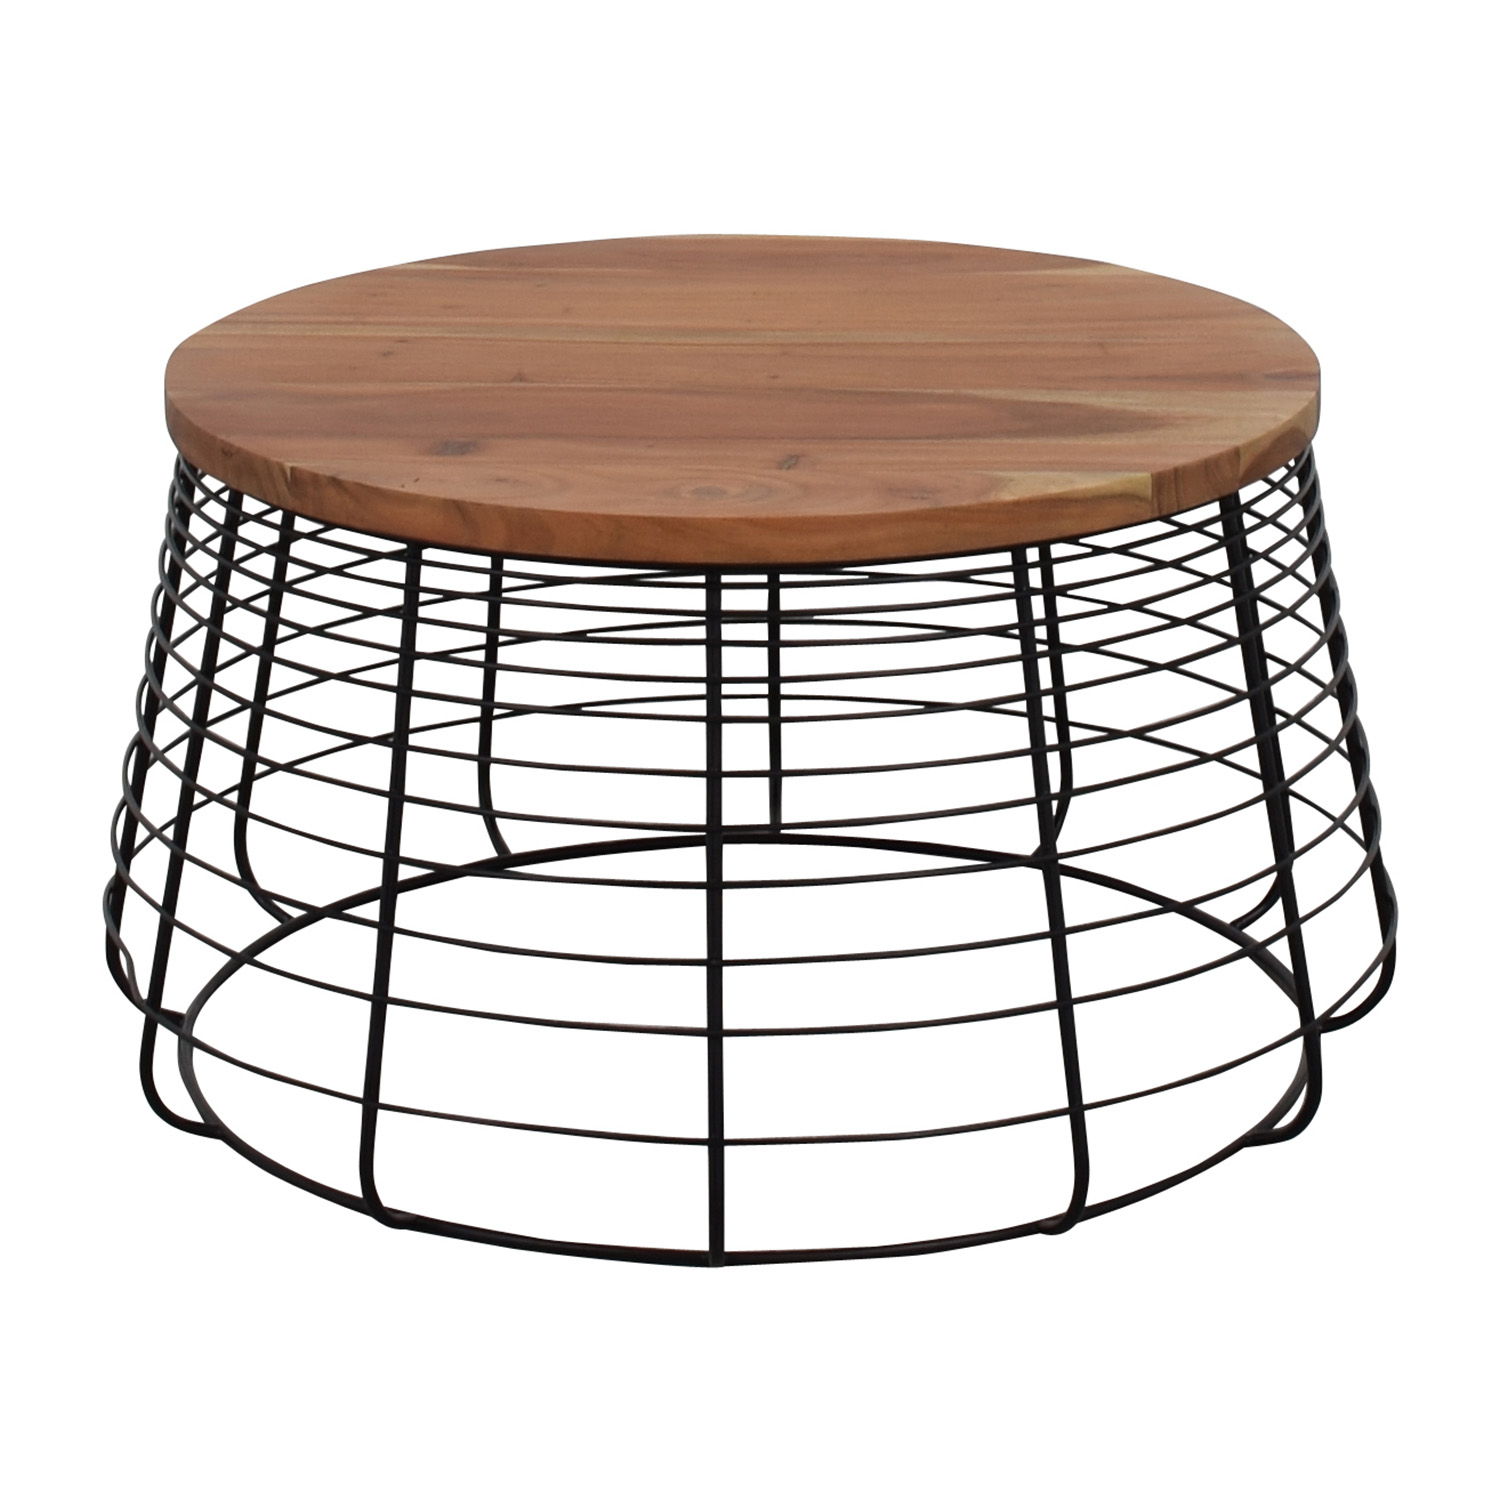 71 OFF CB2 CB2 Round Wire Coffee Table Tables